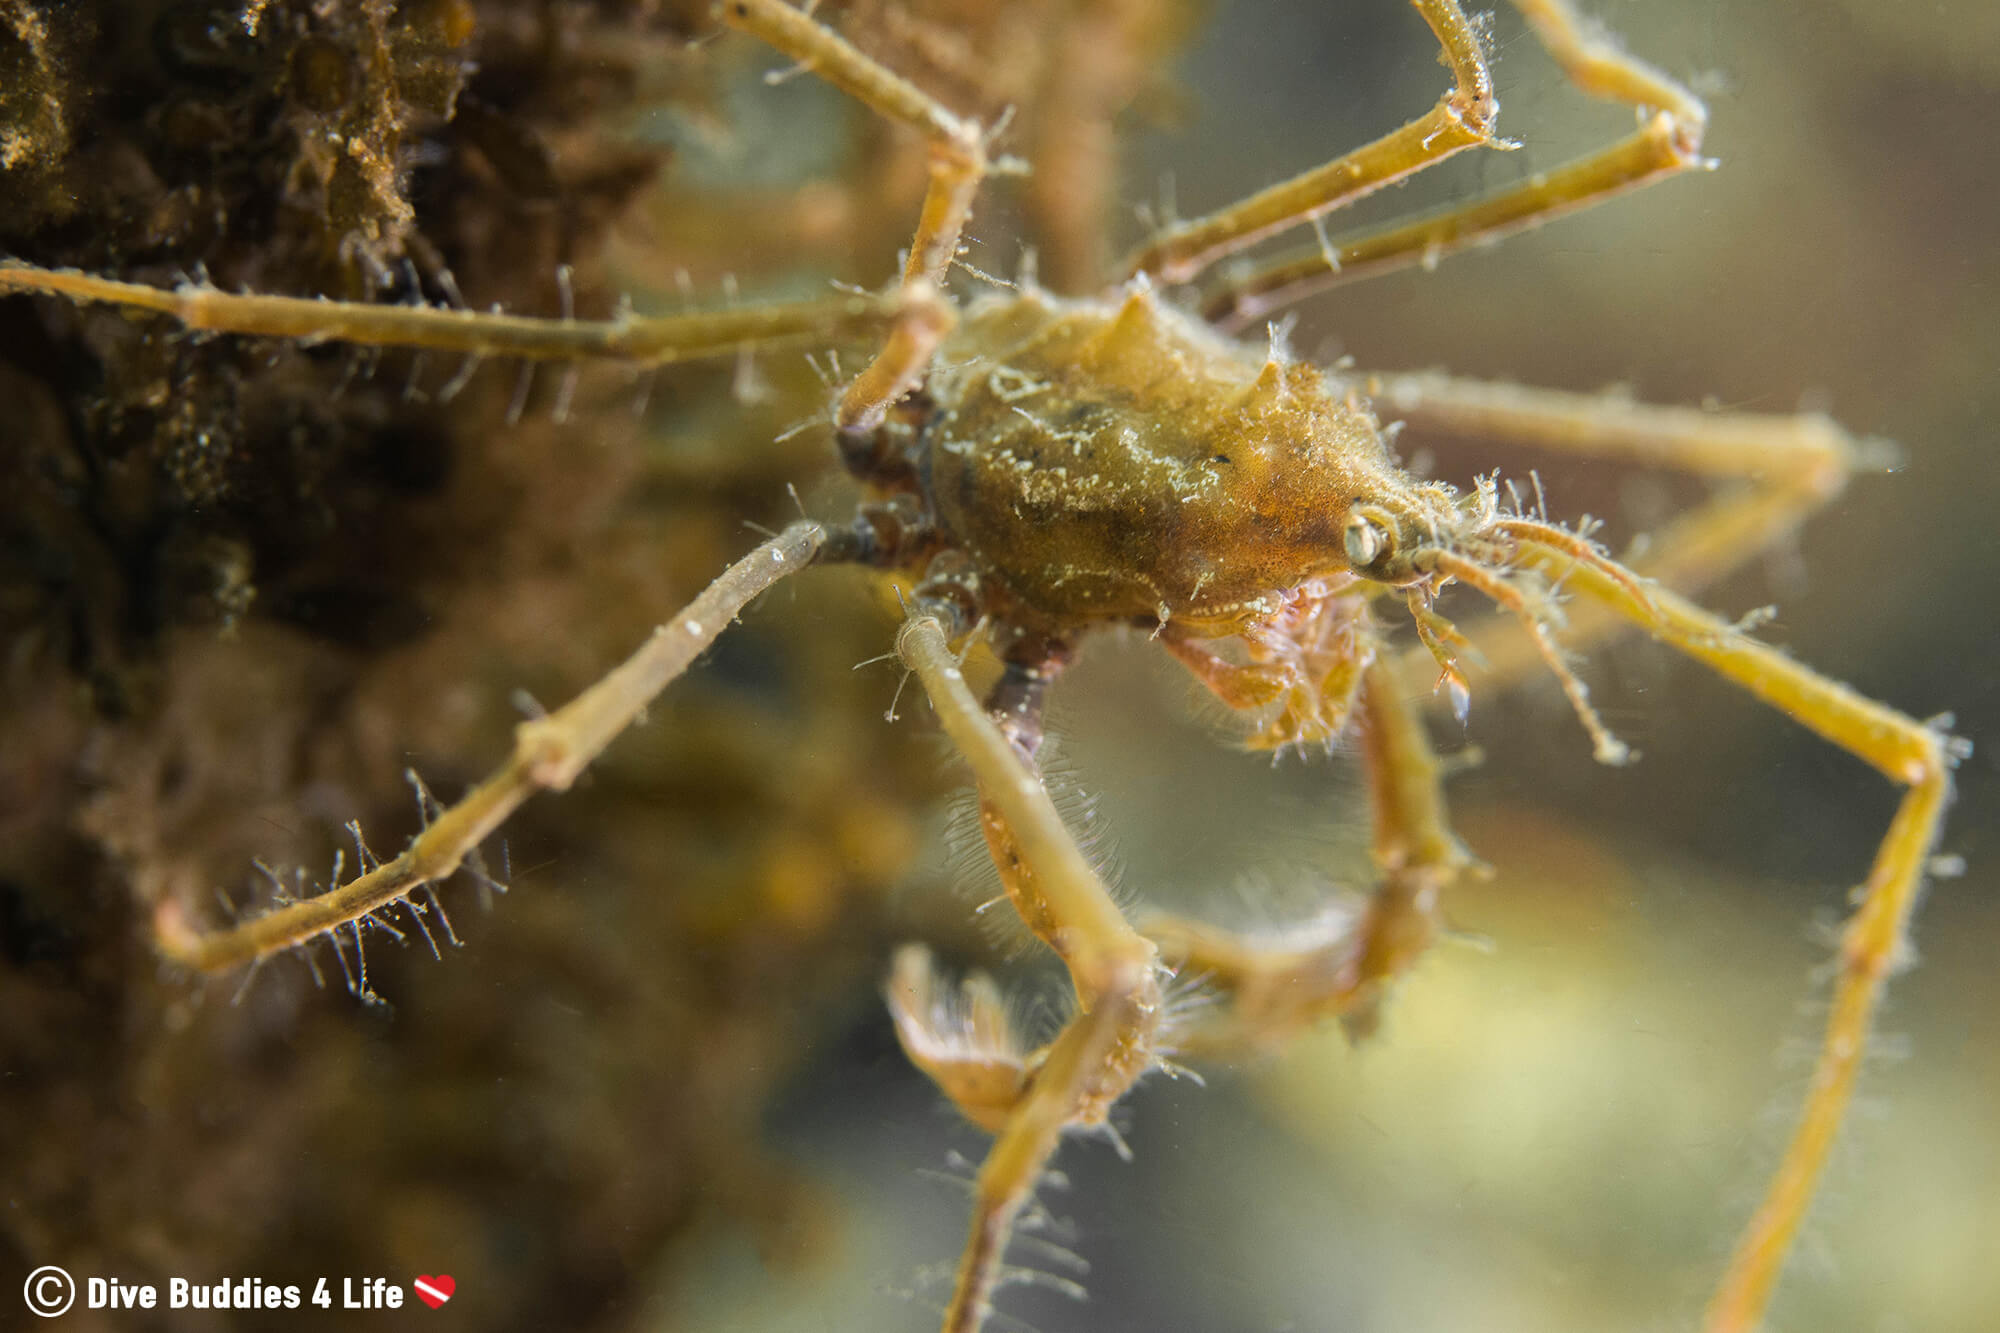 Arrow Crab With It's Long Legs Seen While Scuba Diving In The Netherlands Salt Water Lake In Zeeland